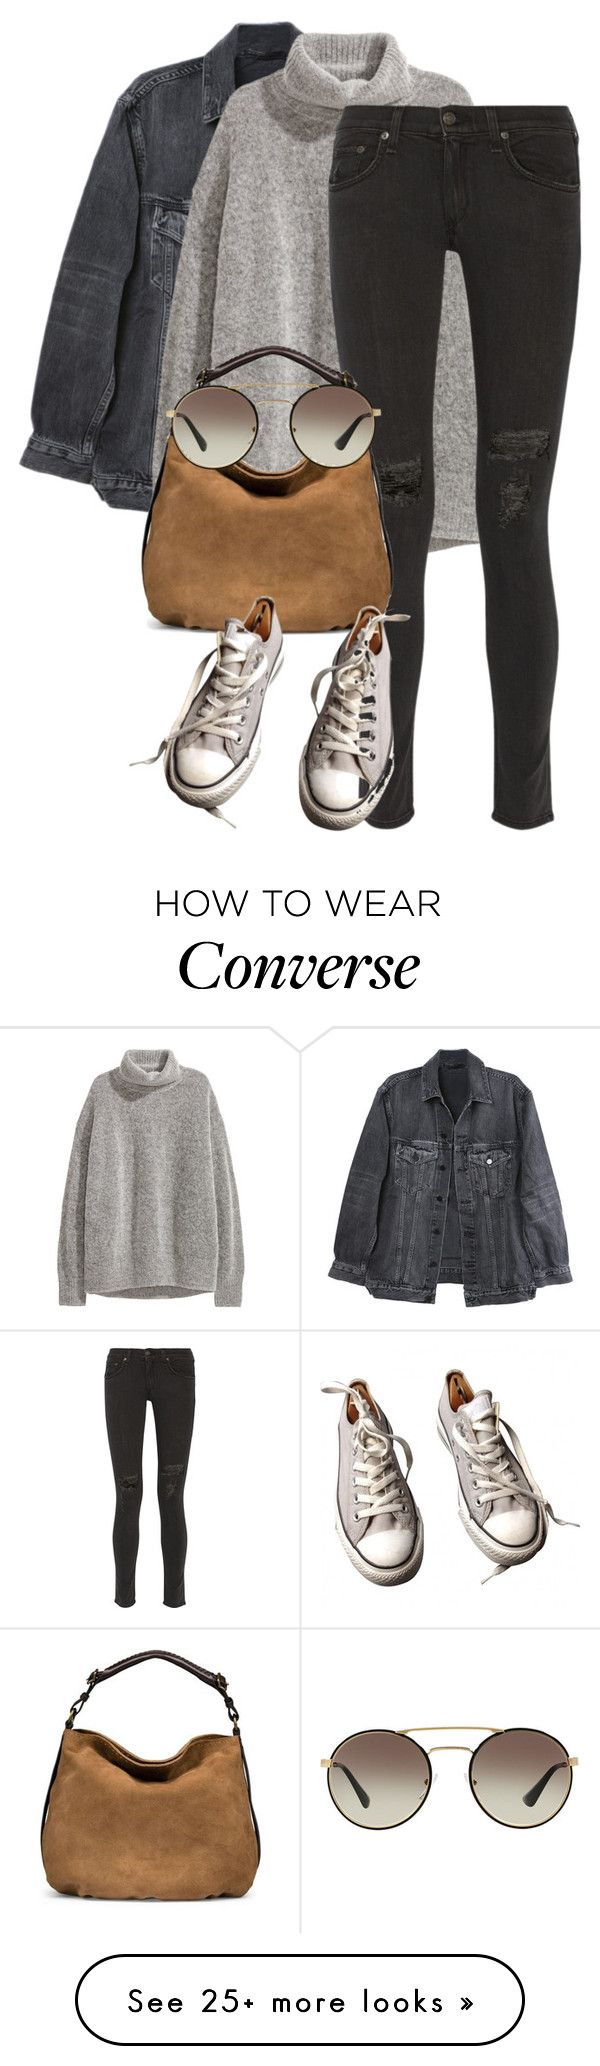 """Untitled #1892"" by sully99 on Polyvore featuring Y/Project, H&M, rag & bone, UGG, Converse and Prada"